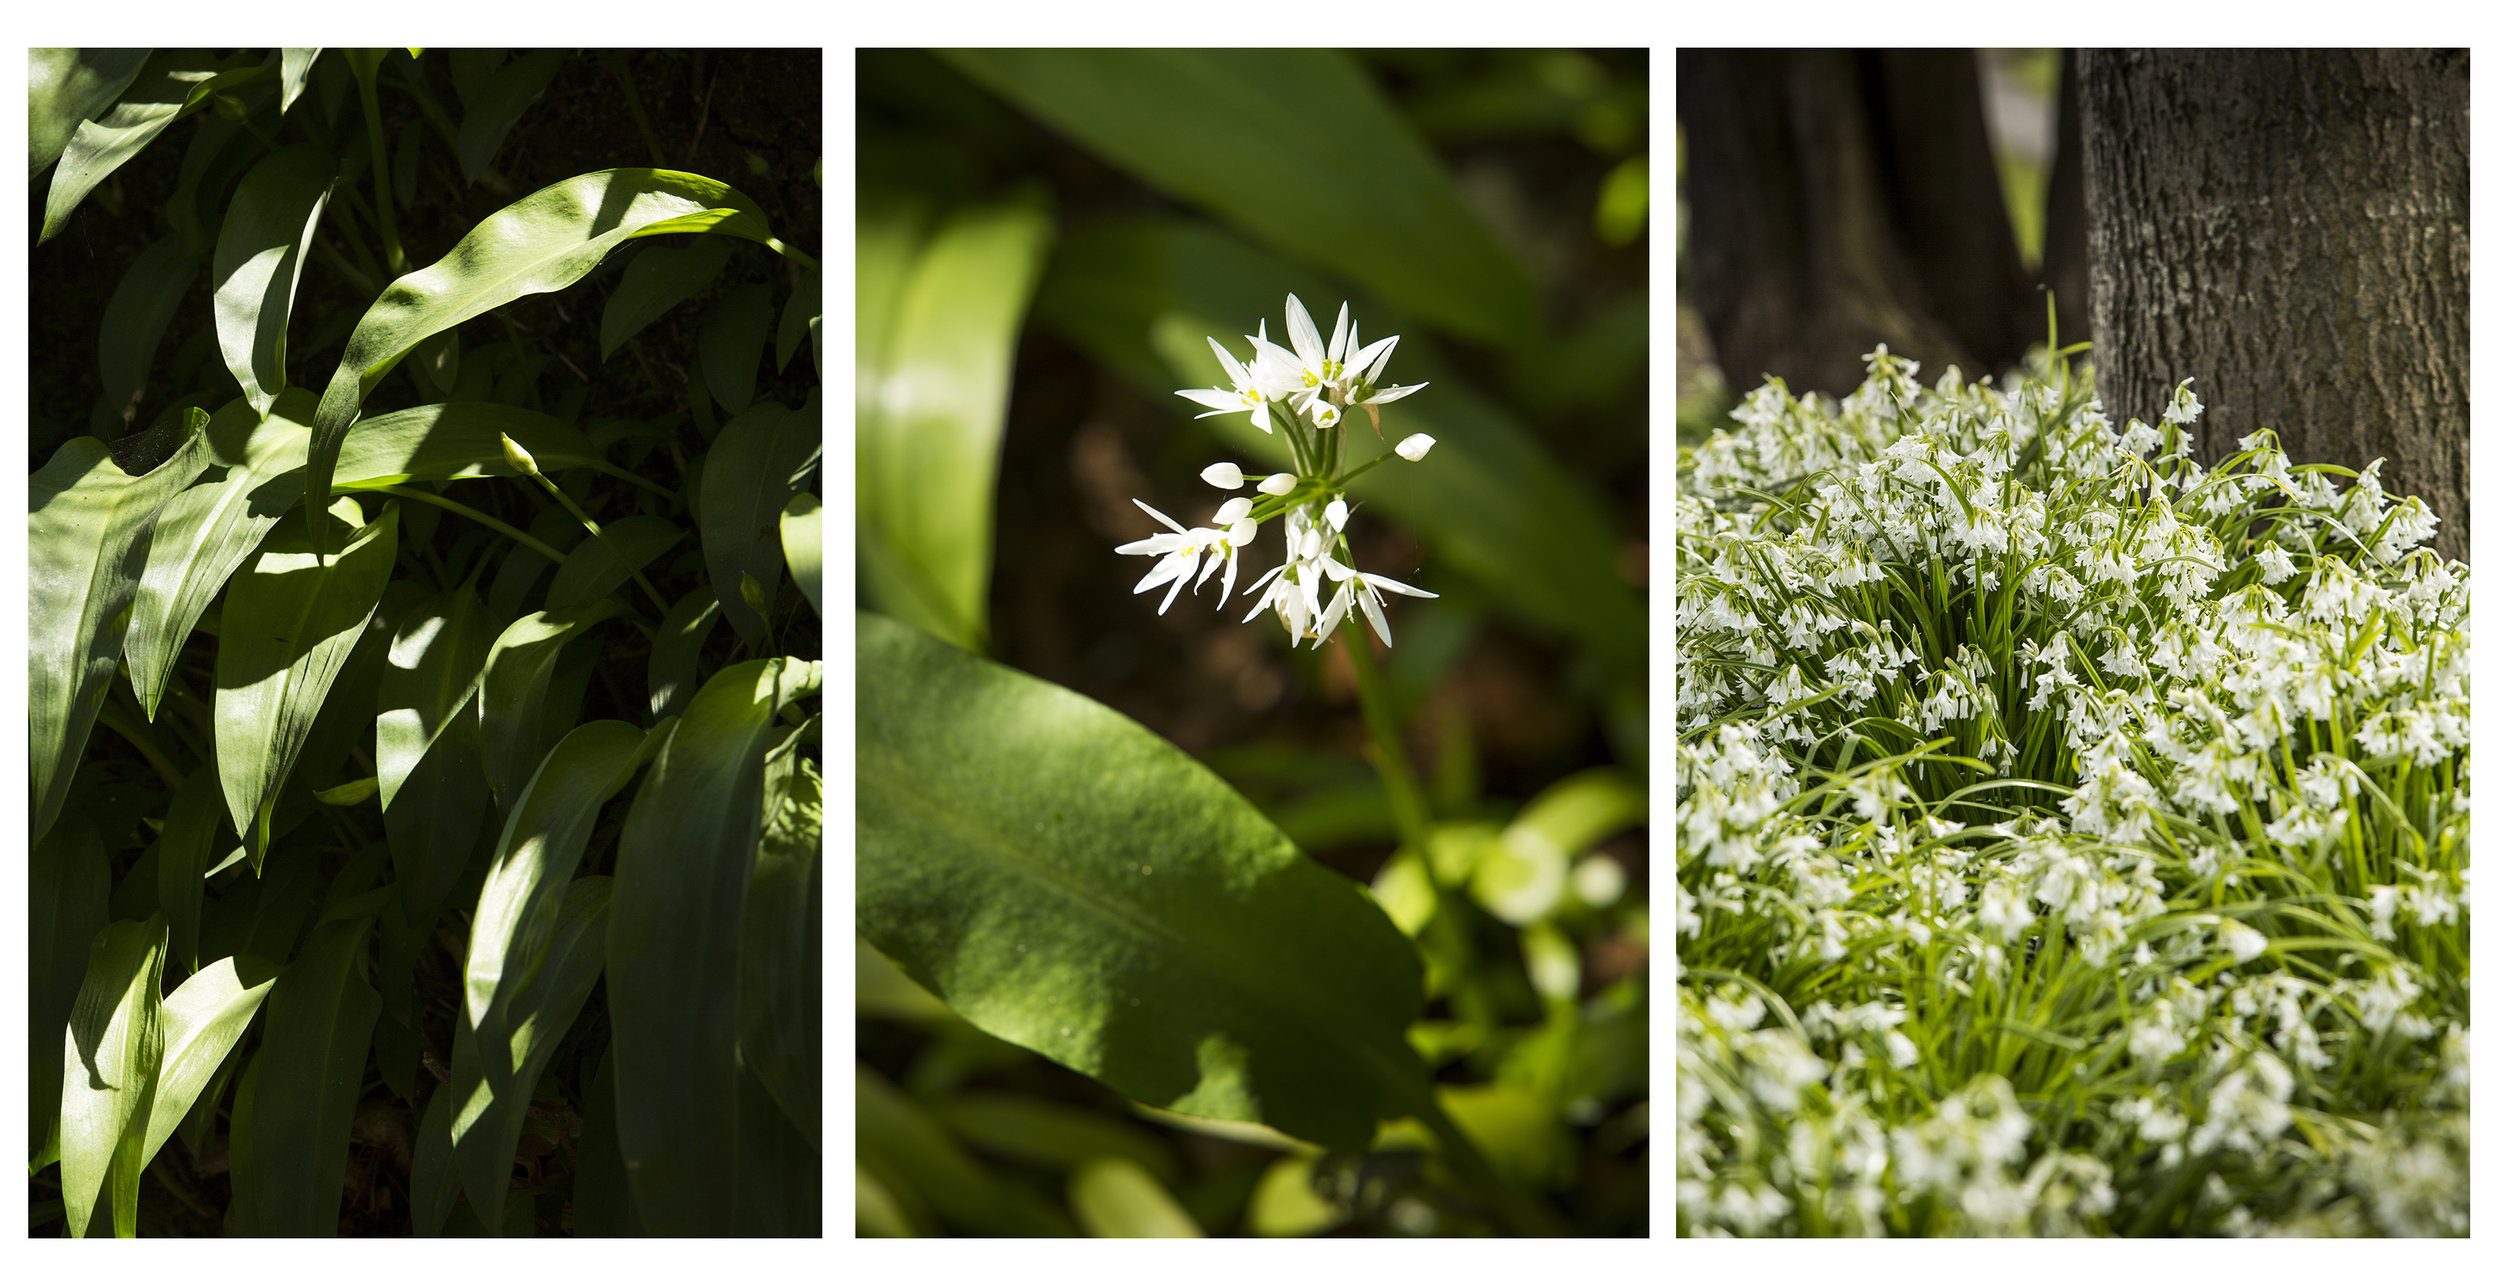 You will see it growing wild on the shady floor of woods, along pathways and in gardens.  There are two types of wild garlic commonly found here in Ireland and across Europe; Allium ursinum , native to Ireland, is also known as ramsoms, or in Irish  creamh . There is also the naturalised  Allium sativum , also known as three-cornered leek, or  glaschreamh in Irish. It's shown in the picture on the right which was taken at the Grand Canal near Mount Street in Dublin City.  Working with Food Stylist Johan van der Merwe in a wood in Wicklow, we collected a couple of handfuls of wild garlic